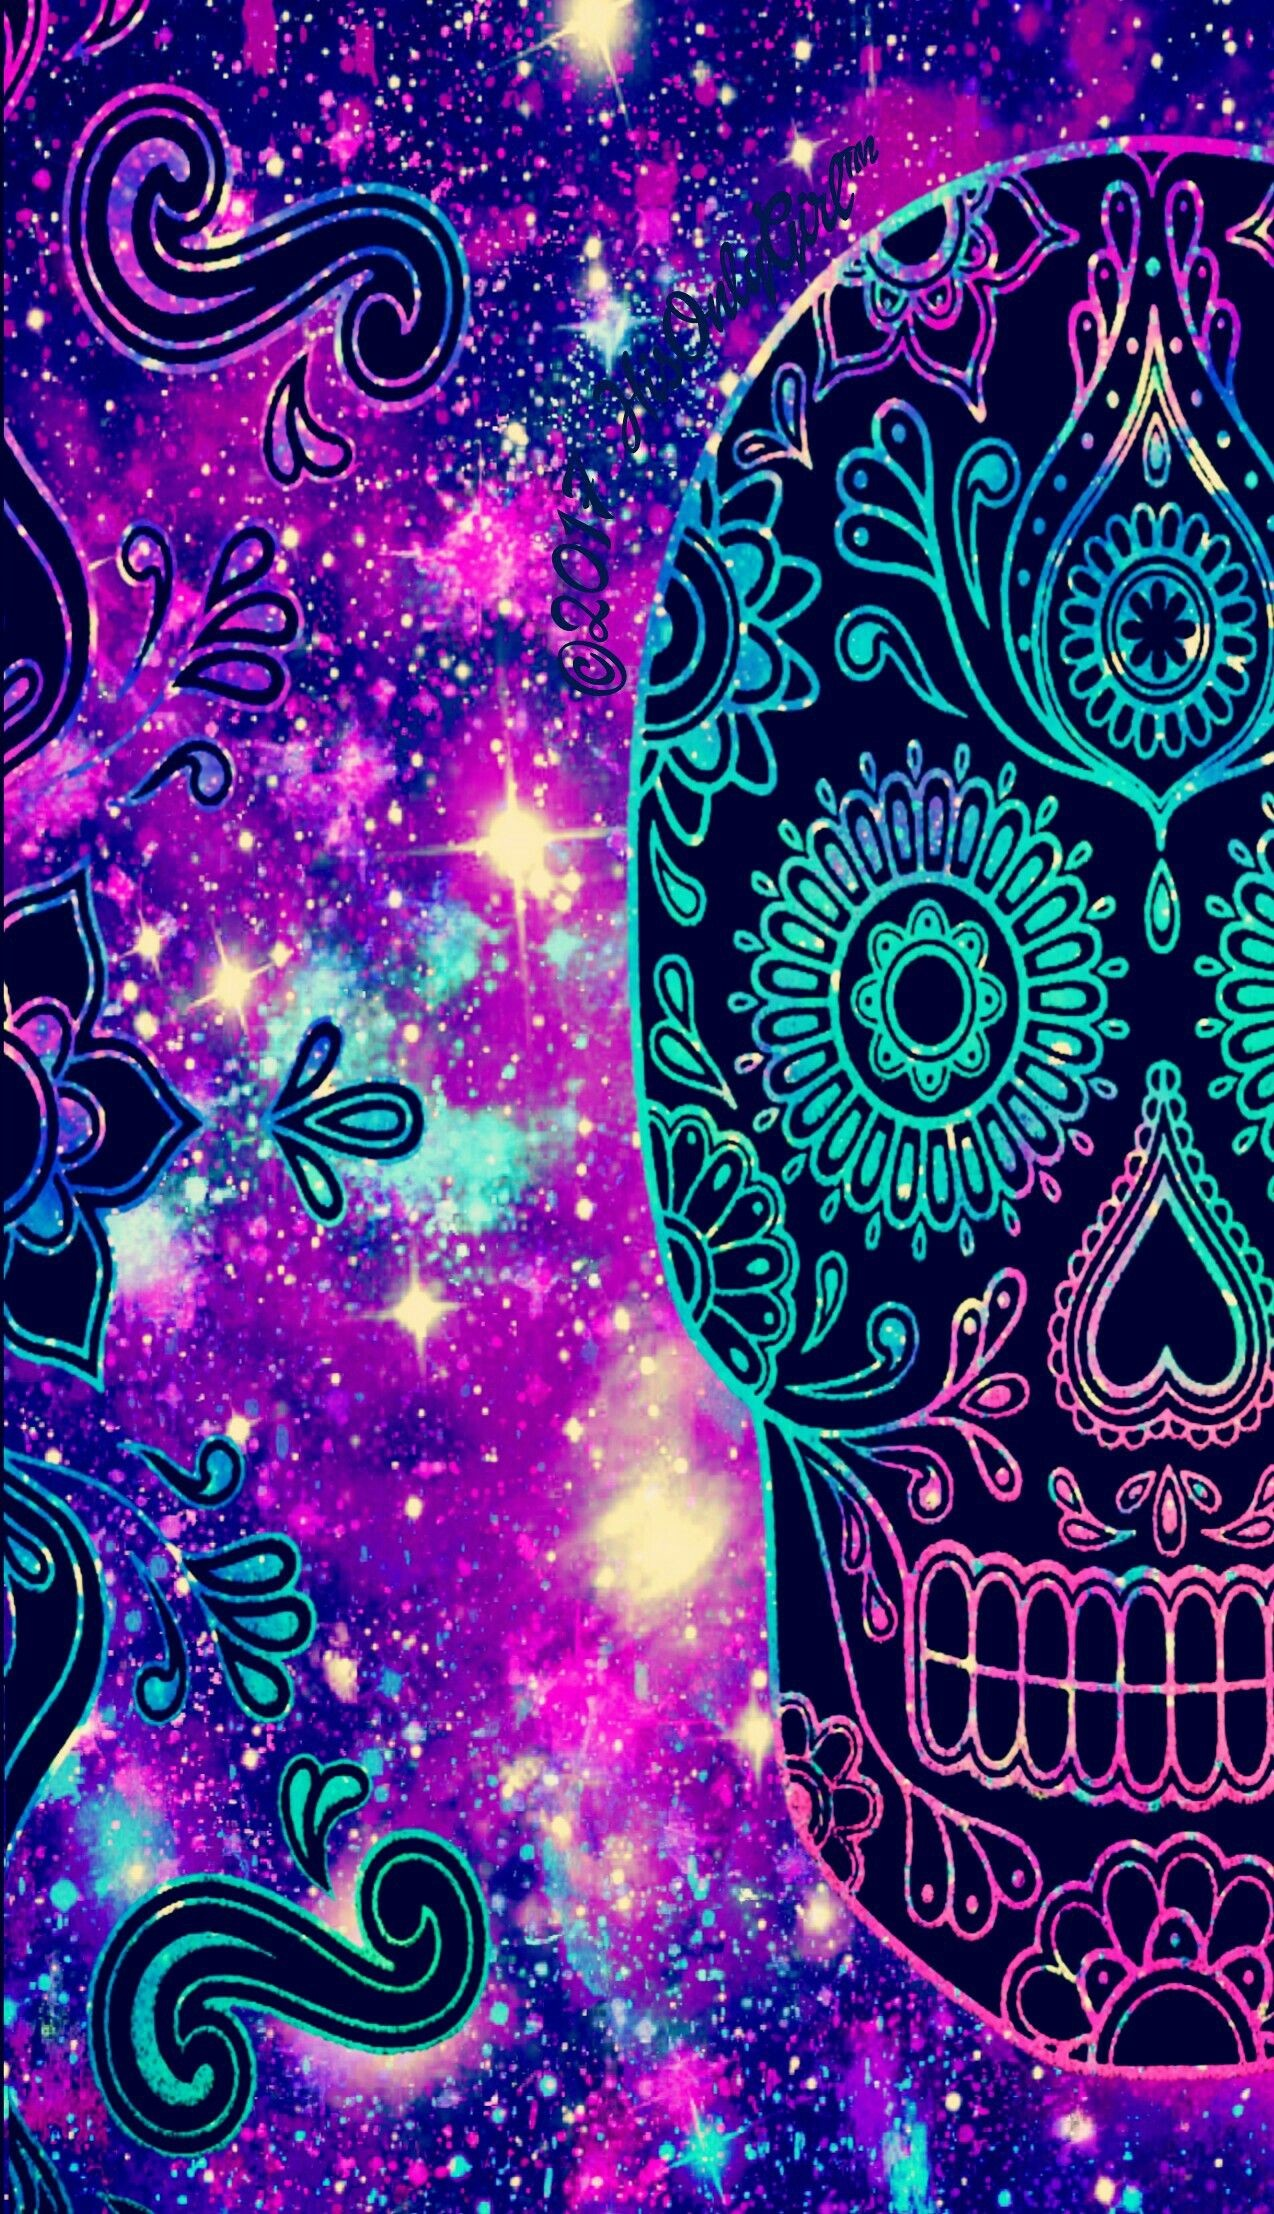 Res: 1274x2214, Colorful Tribal galaxy skull wallpaper I created for the app CocoPPa!